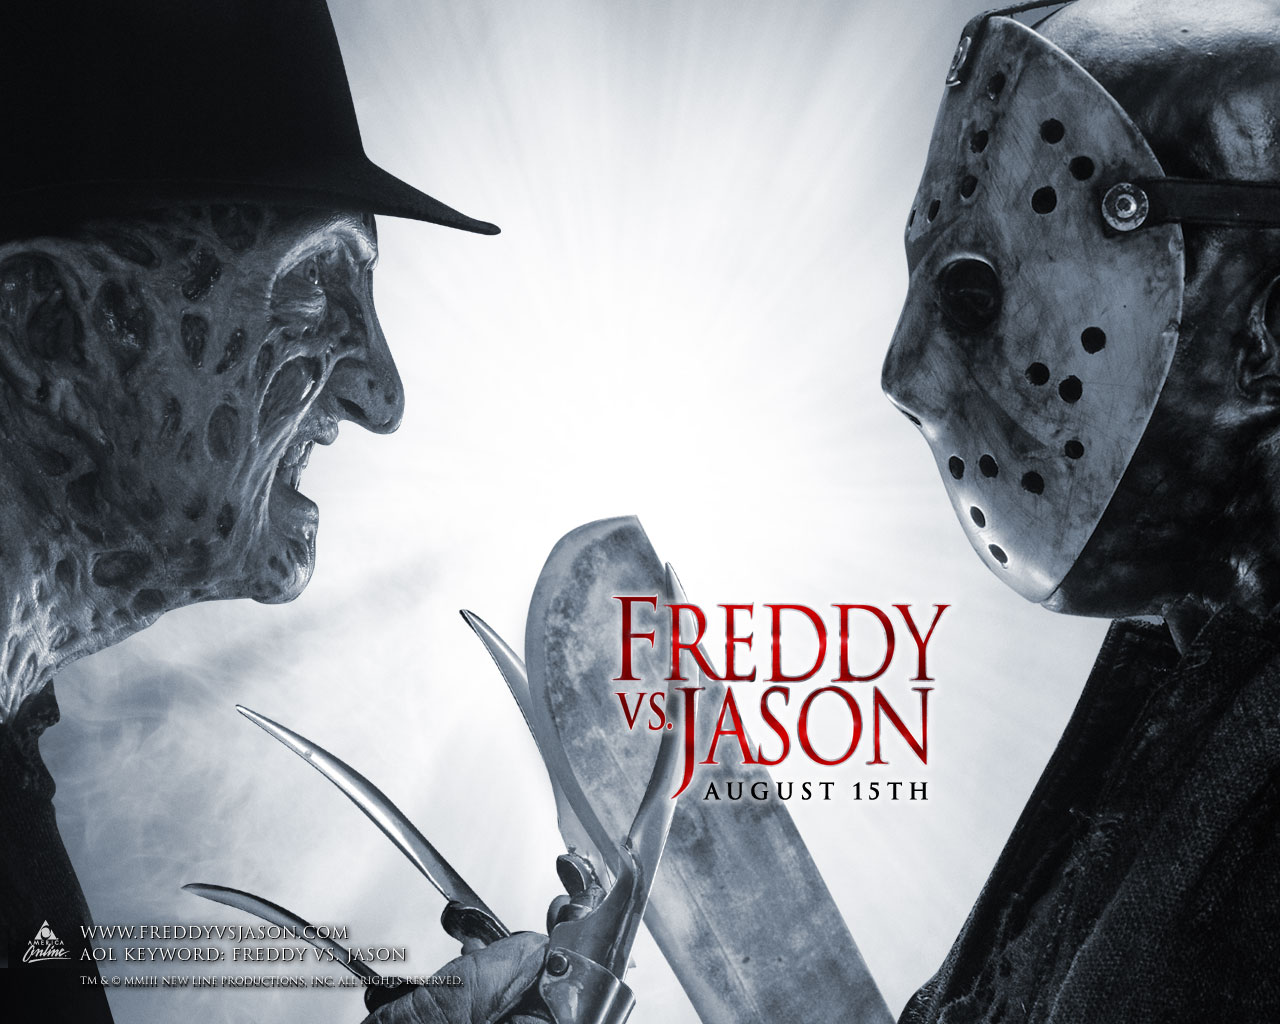 freddy vs dason